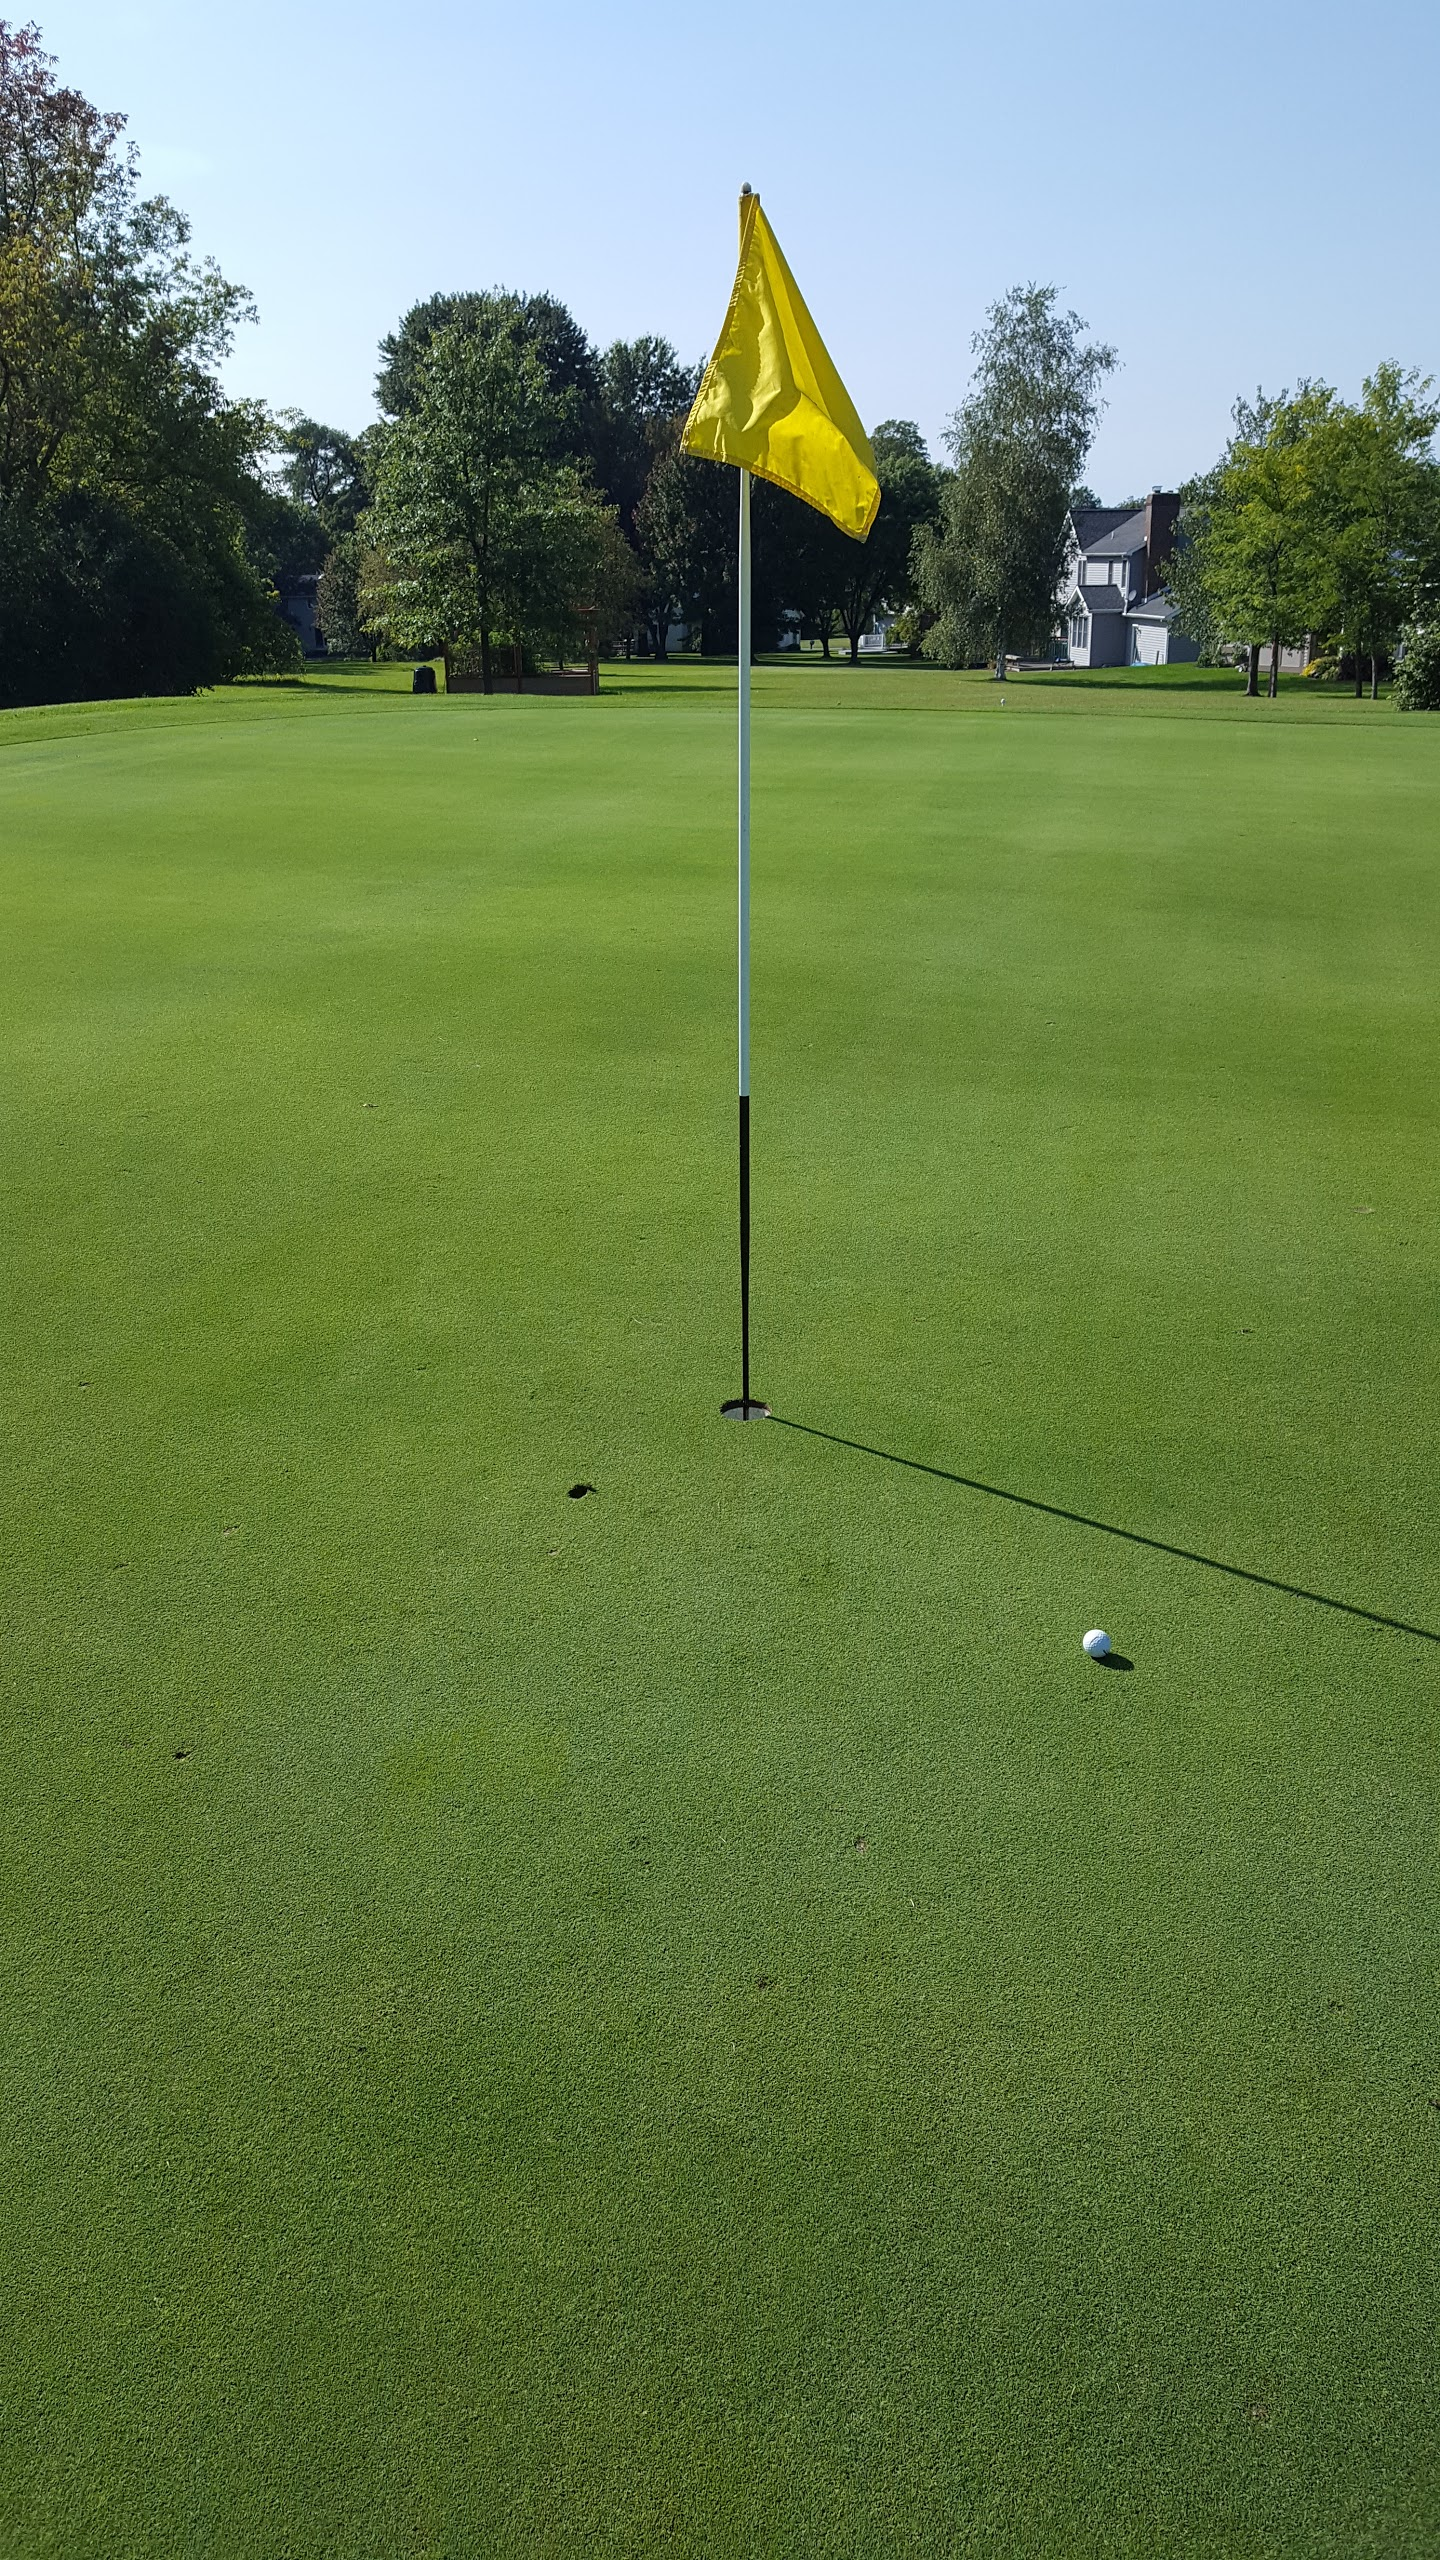 golf green with yellow flag and golf ball near hole